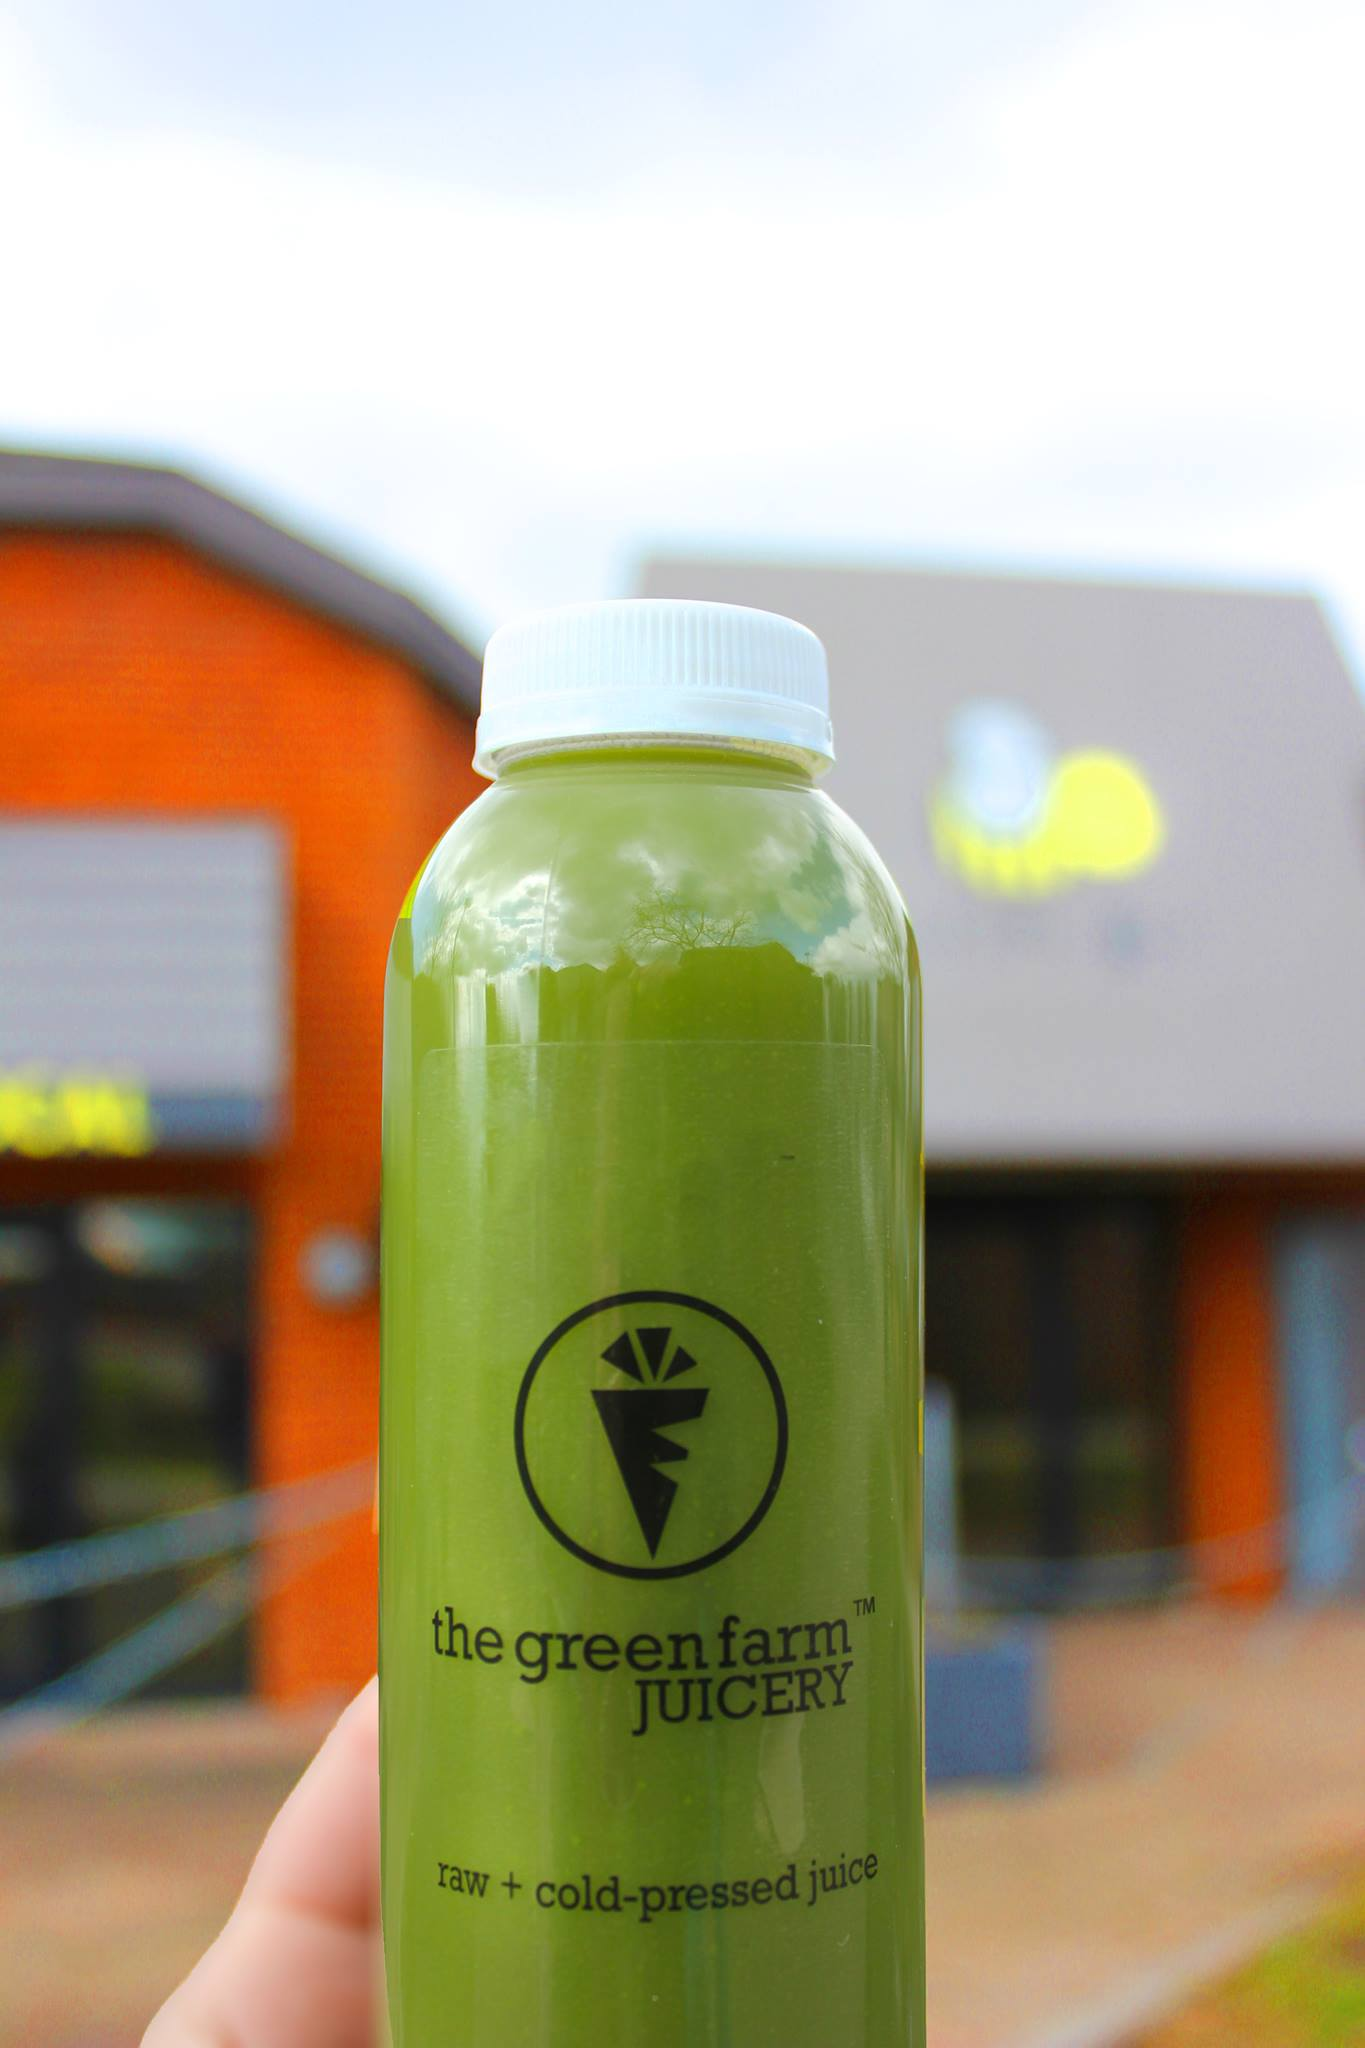 Green Farm Juicery